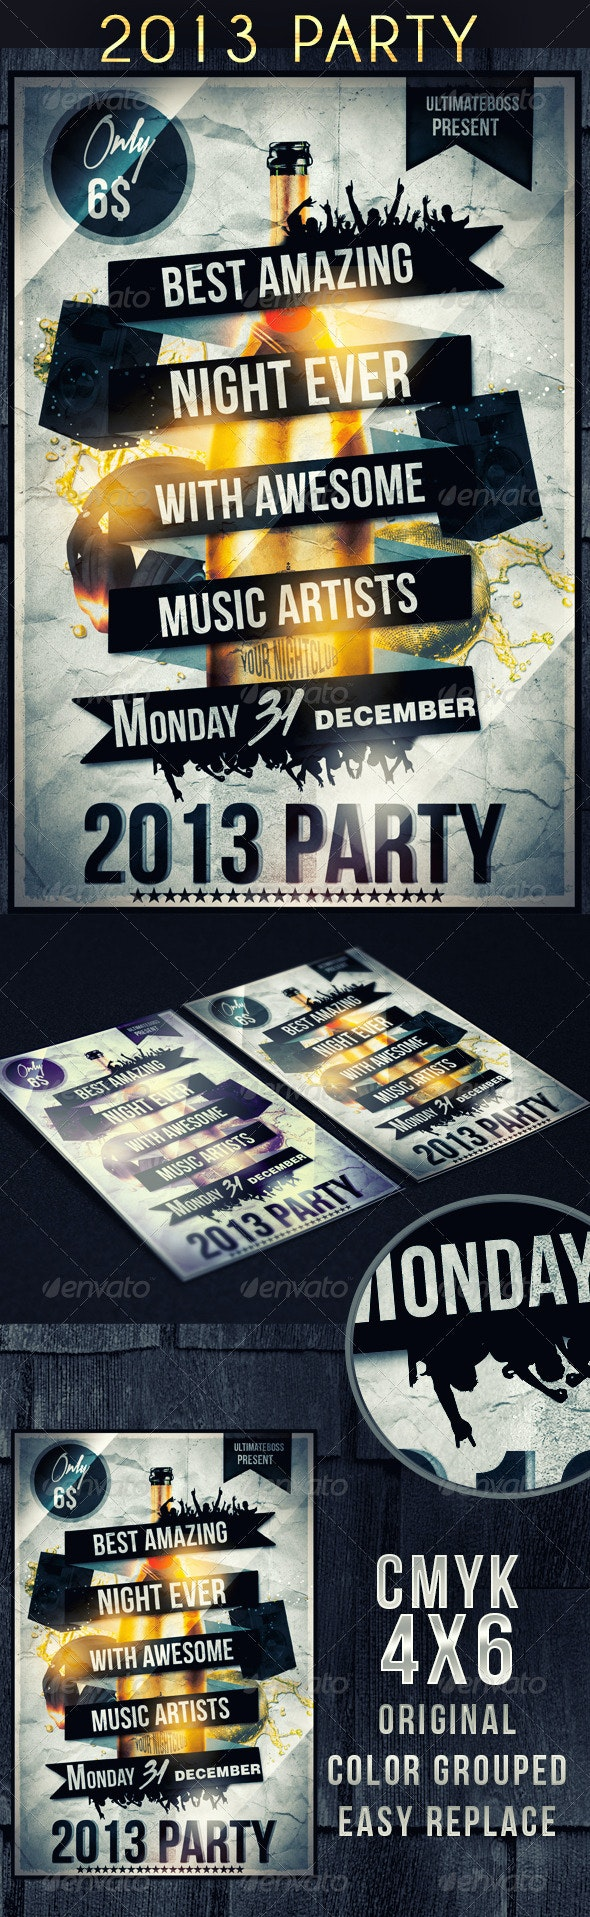 2013 Party Flyer - Clubs & Parties Events